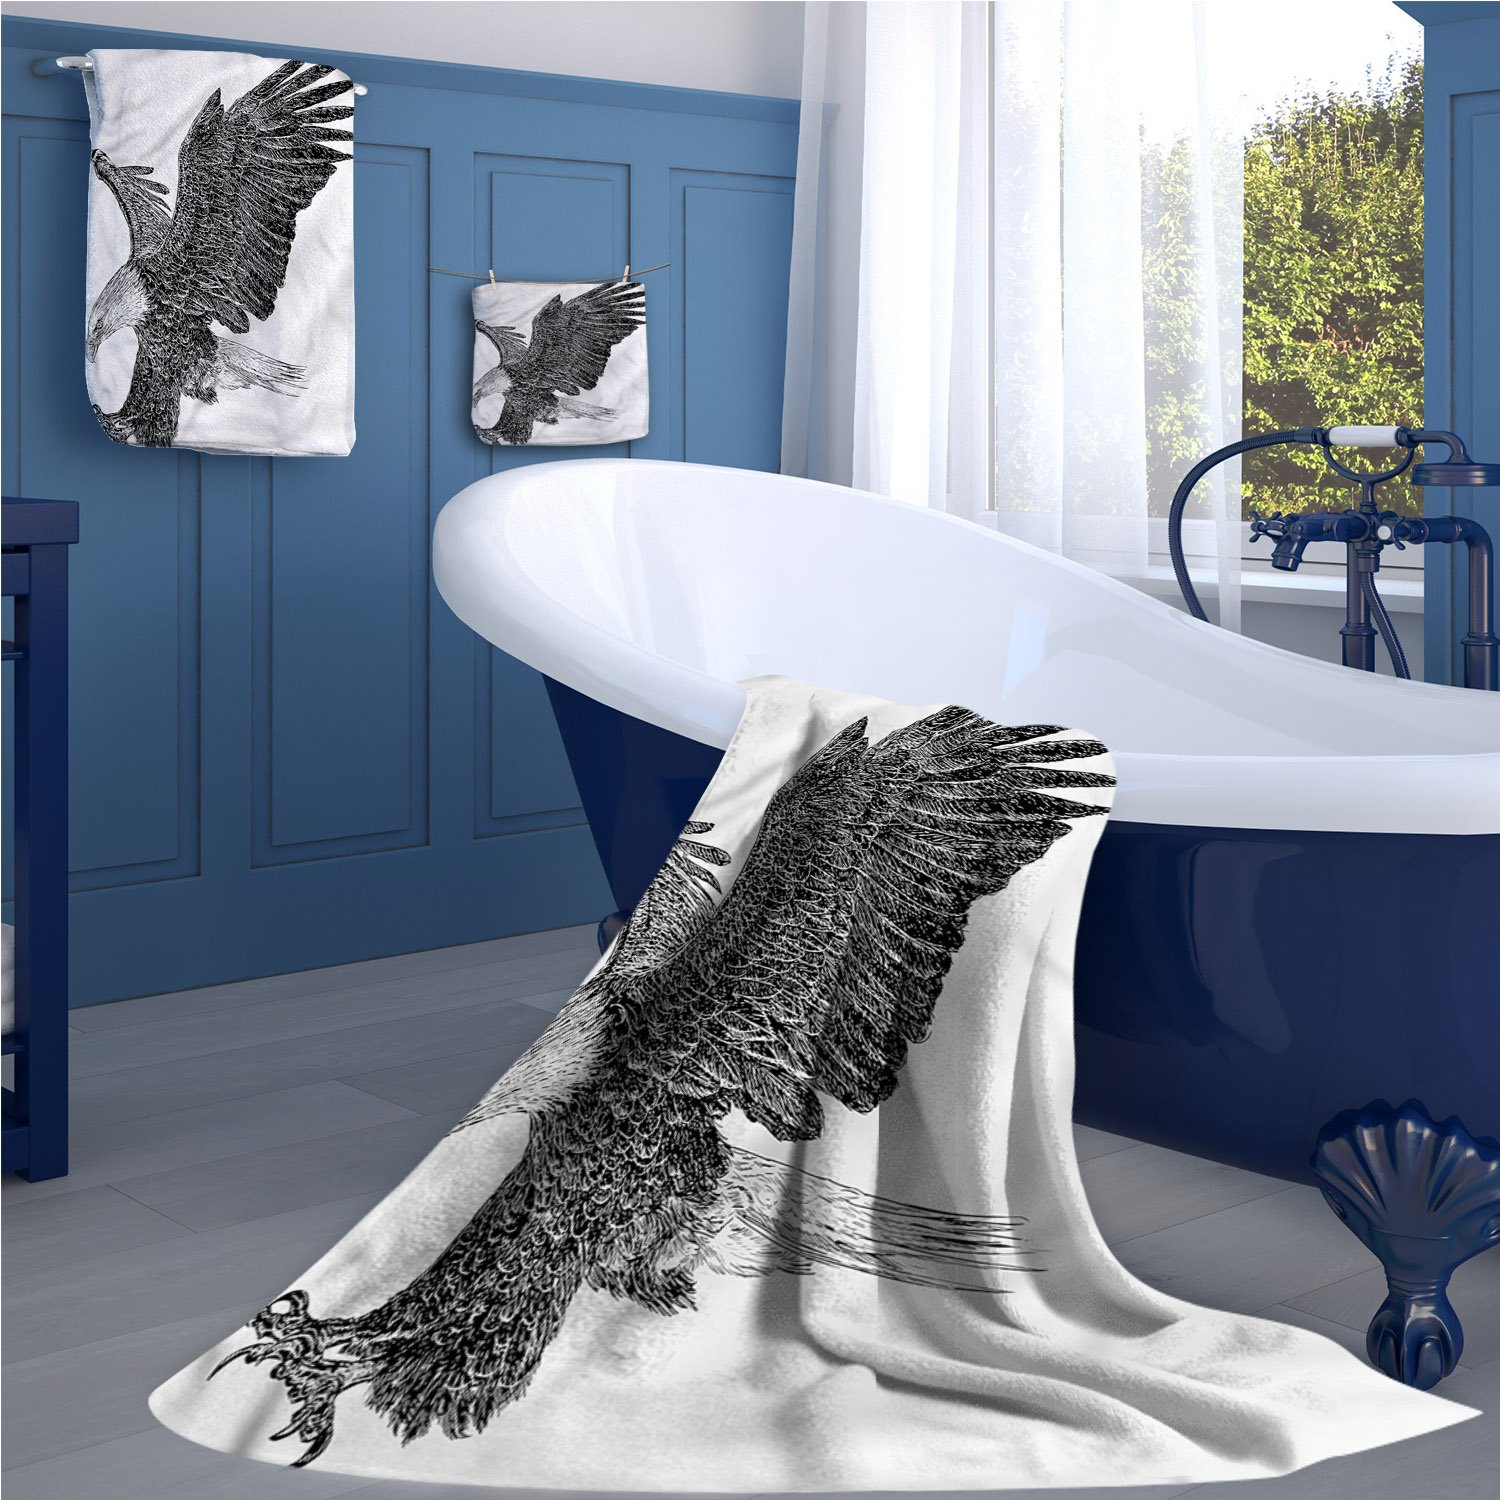 alisoso Animal large hand towels set Bald Eagle Swoop Hand Drawn Sketchy Figure Flying Hunter Wildness Artwork gym hand towels set Black Pale Grey